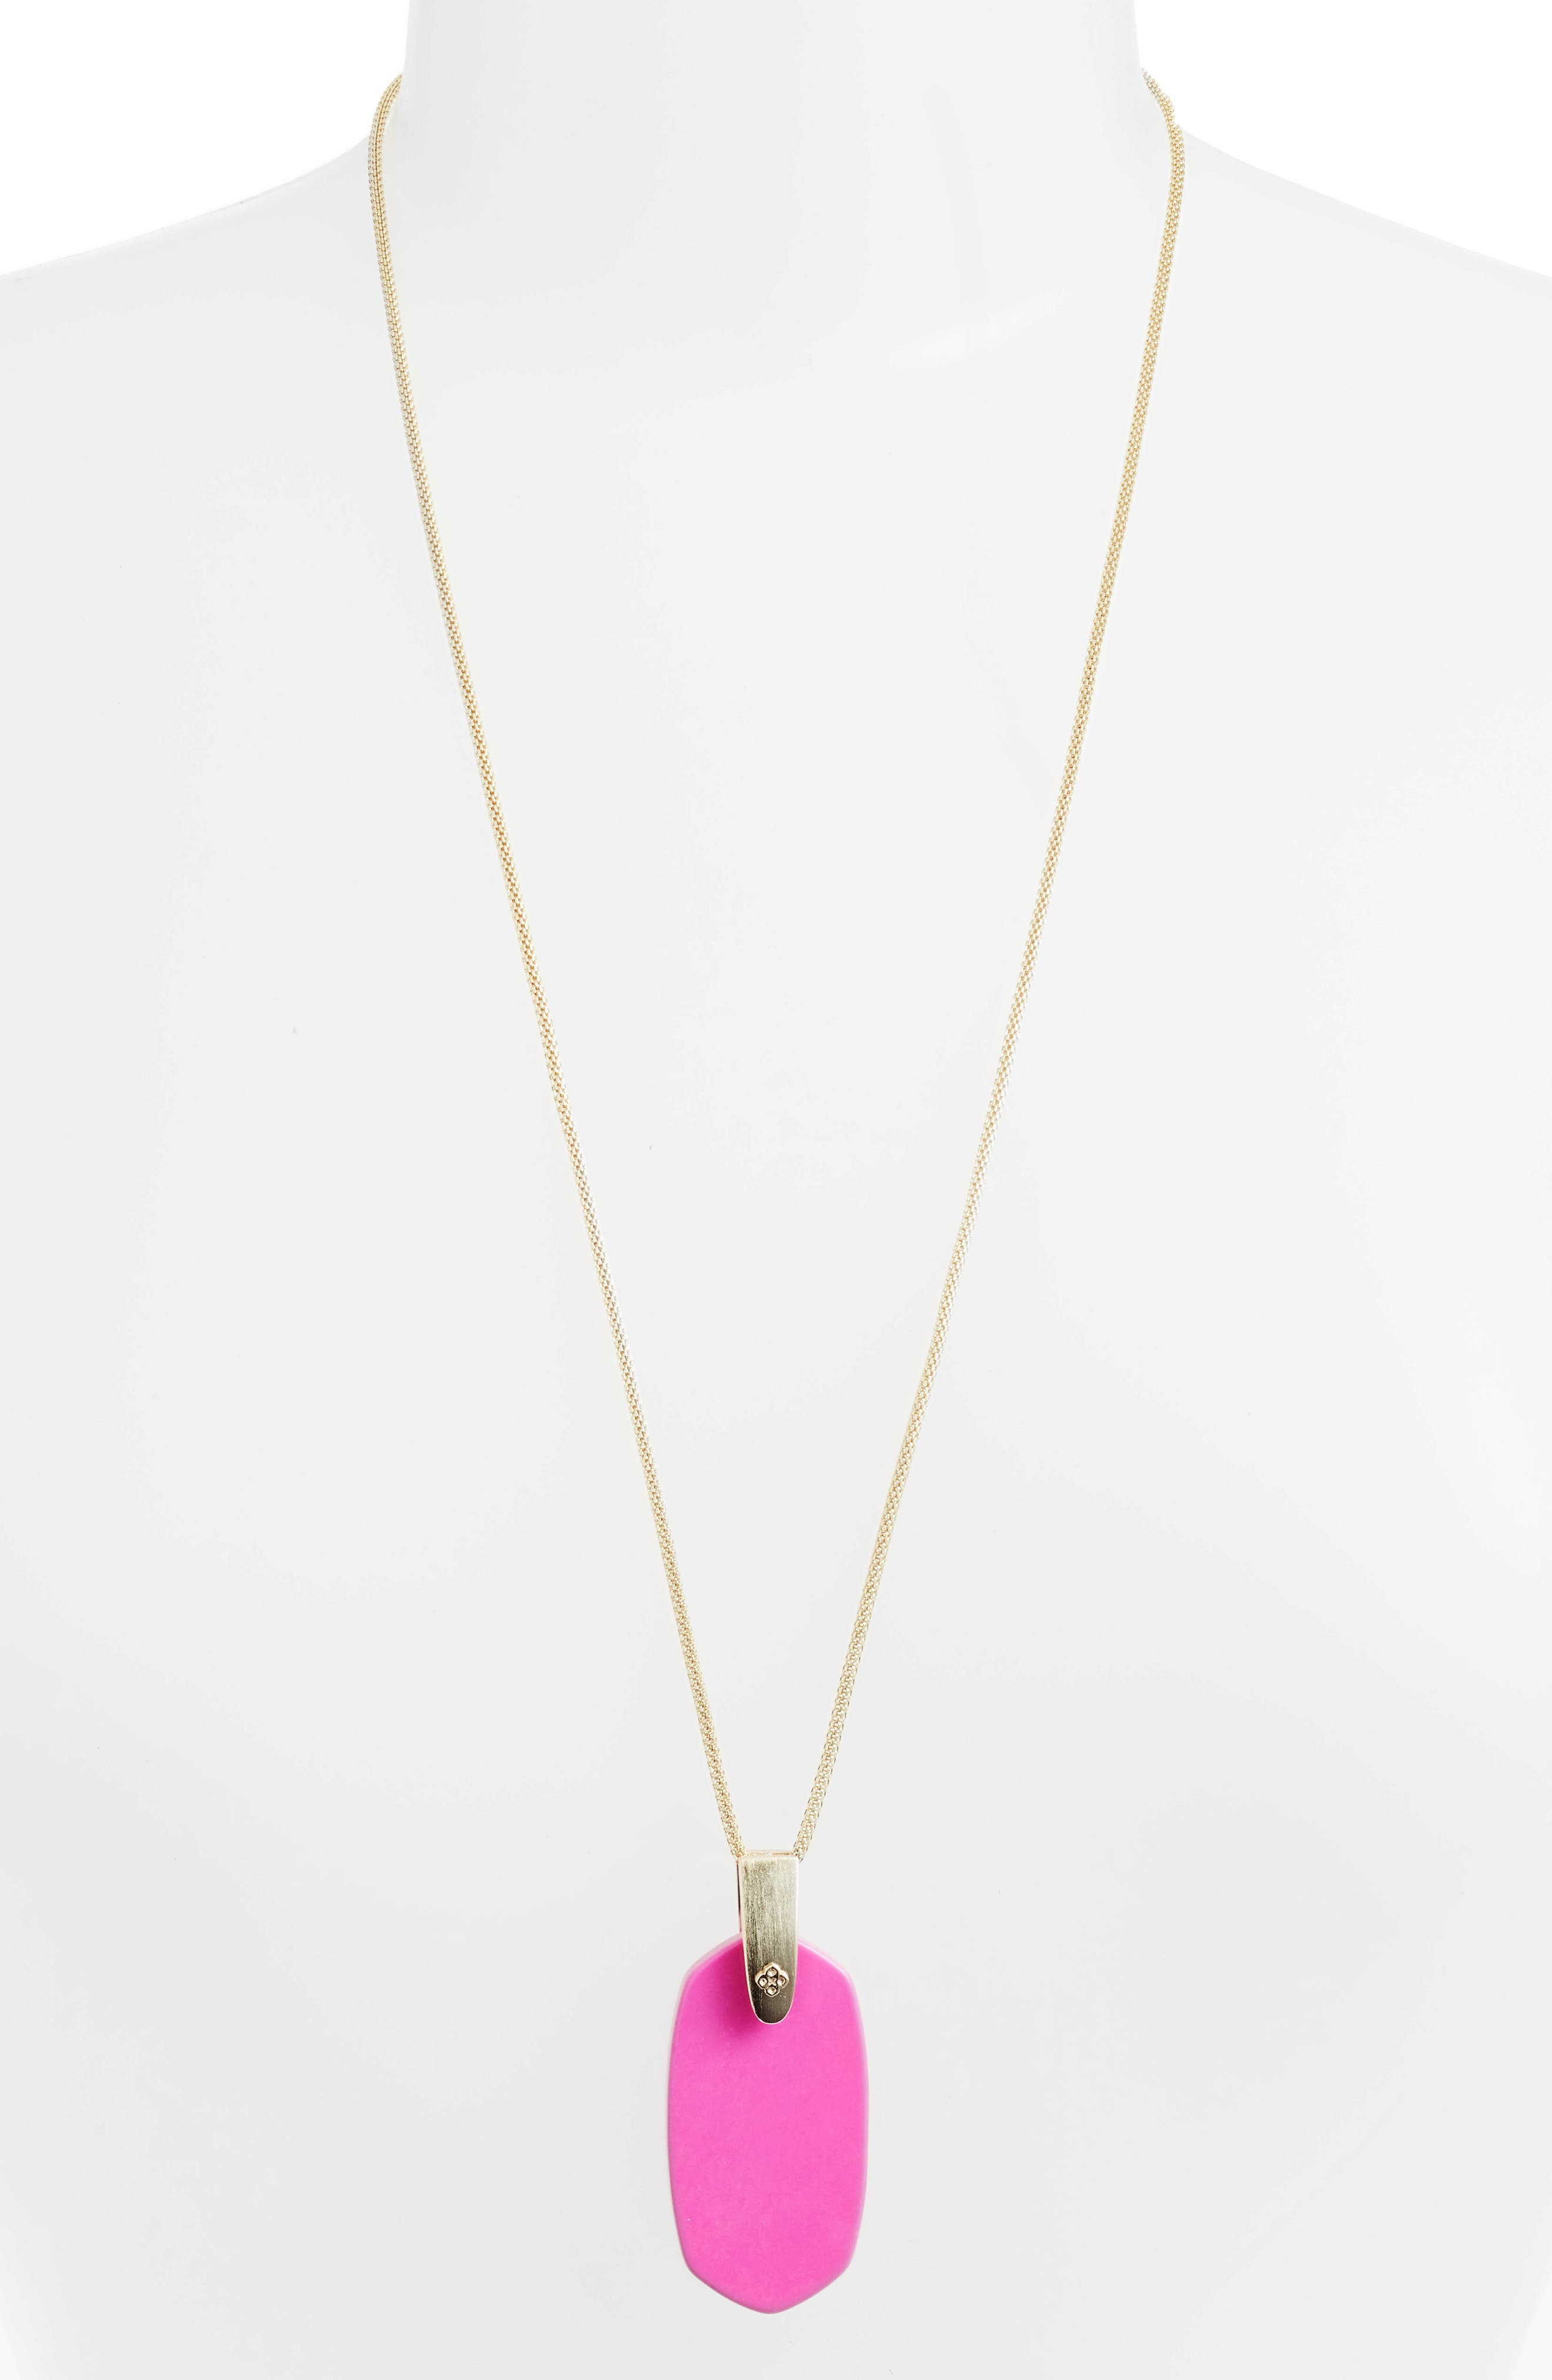 Kendra Scott Inez Pendant Necklace